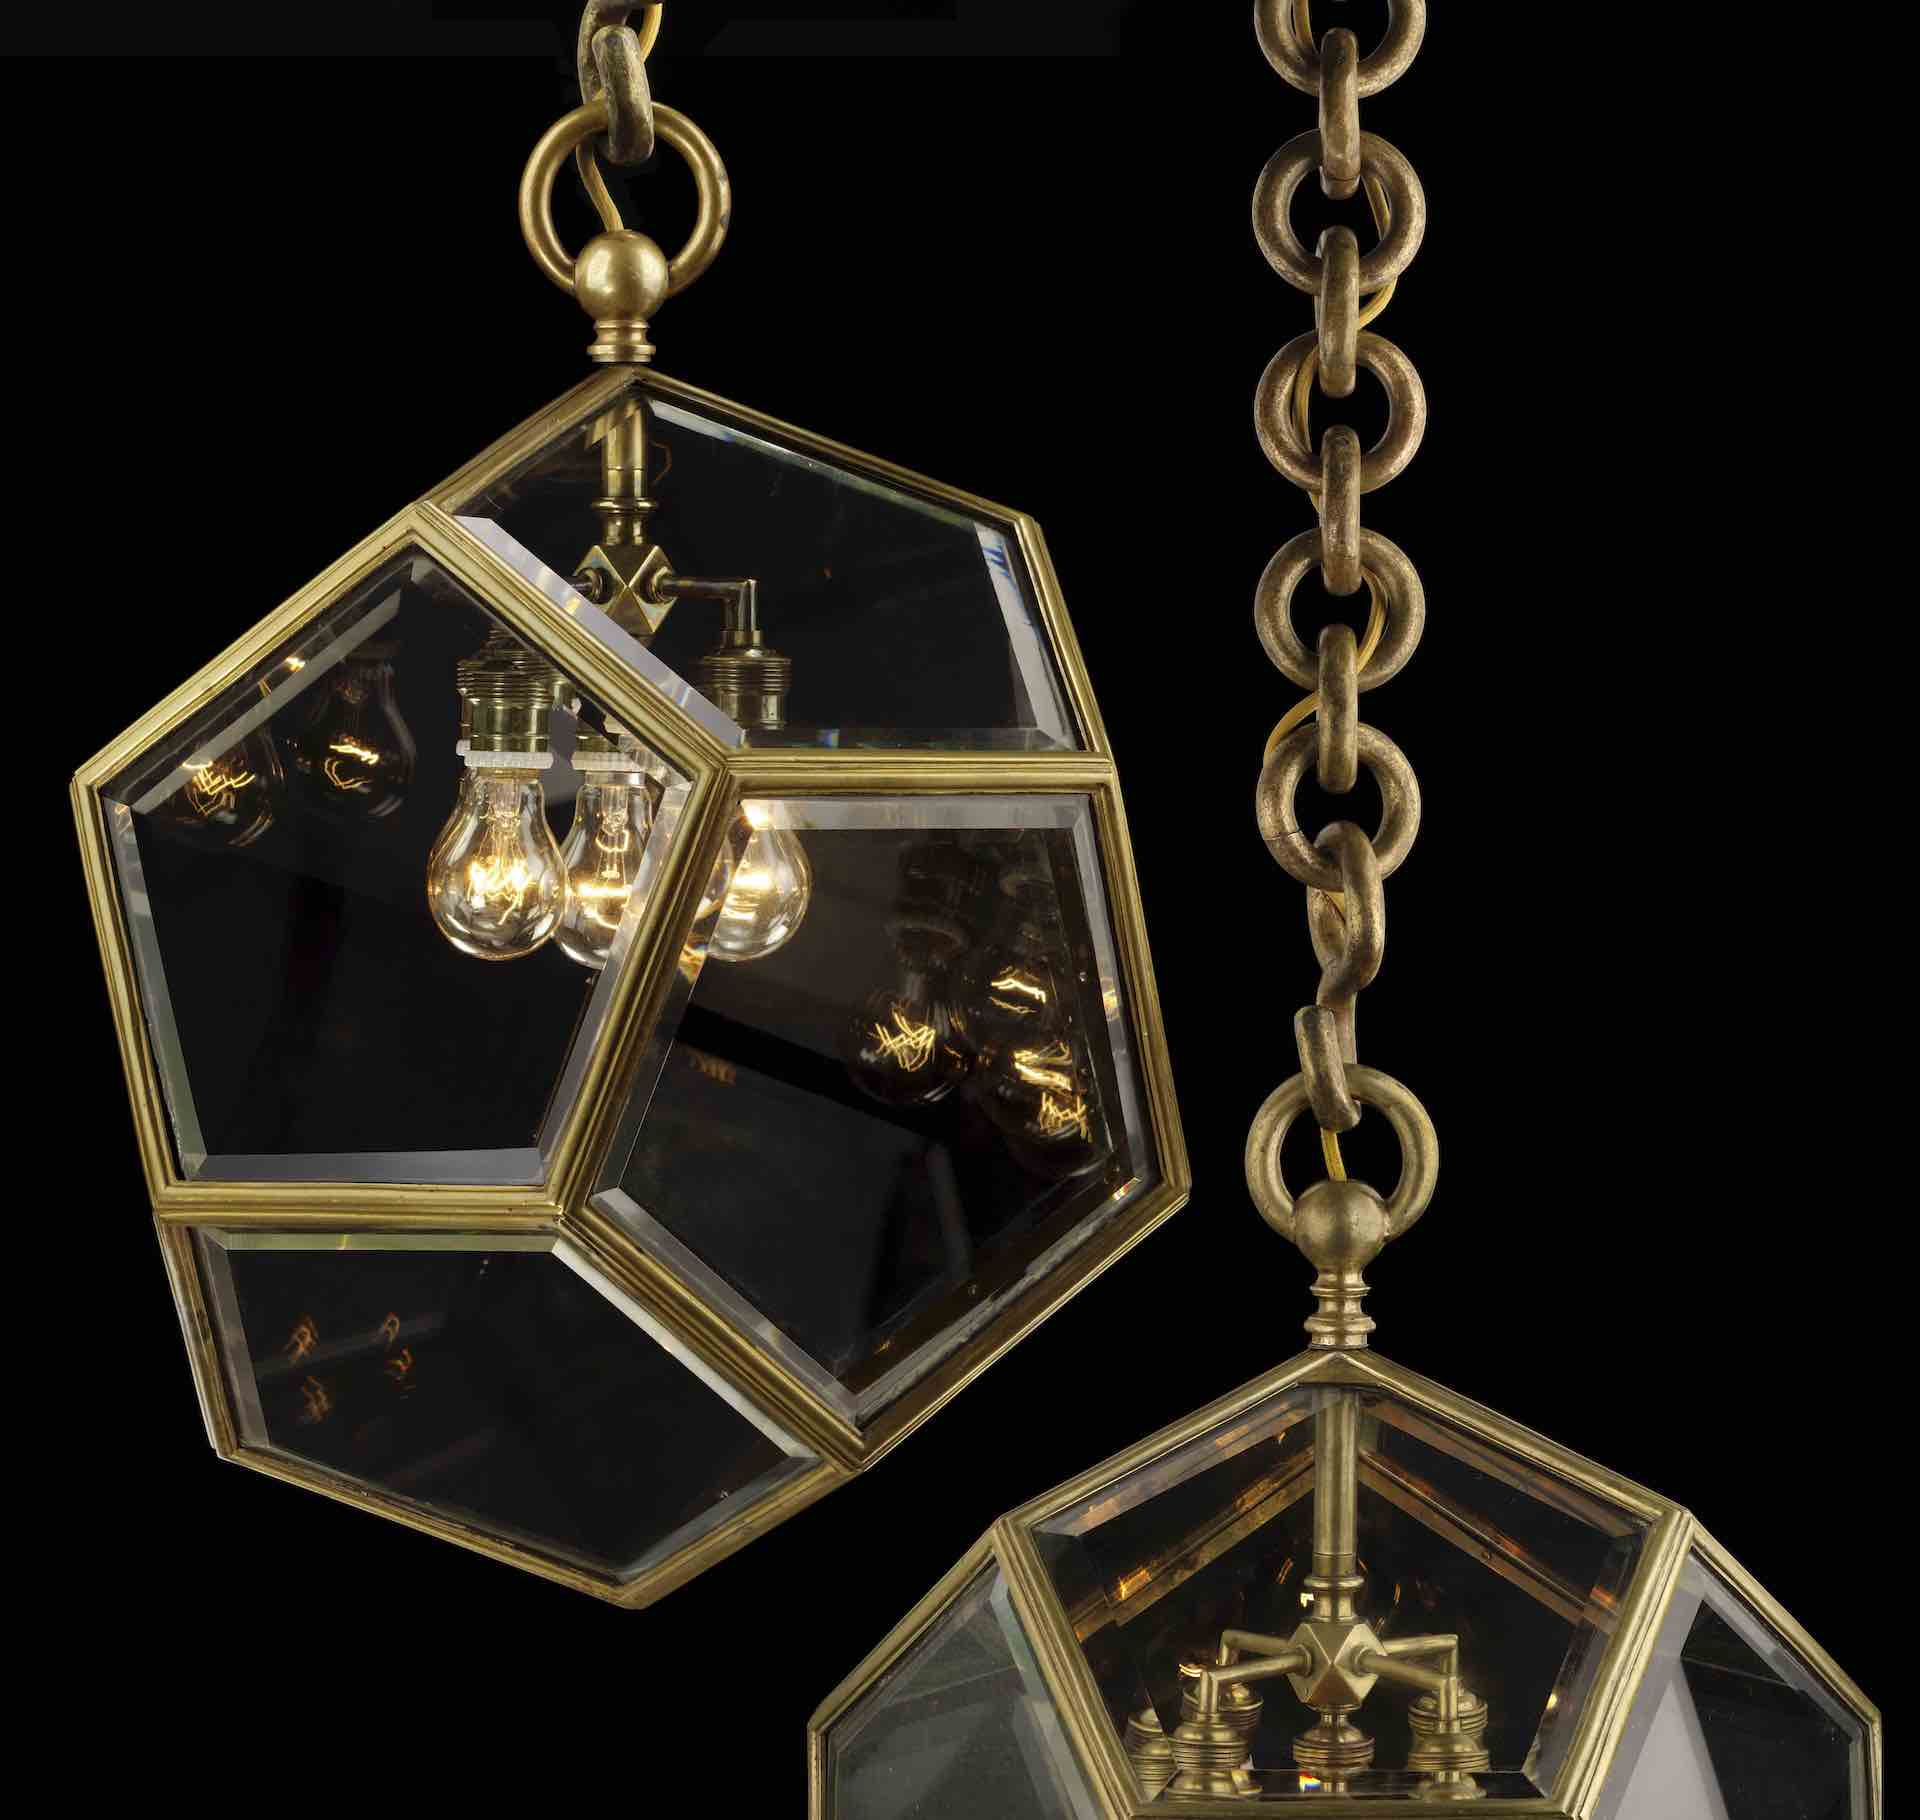 Hanging Lamp by Adolf Loos for F.O. Schmidt, c. 1901. Photo © Pasodoble